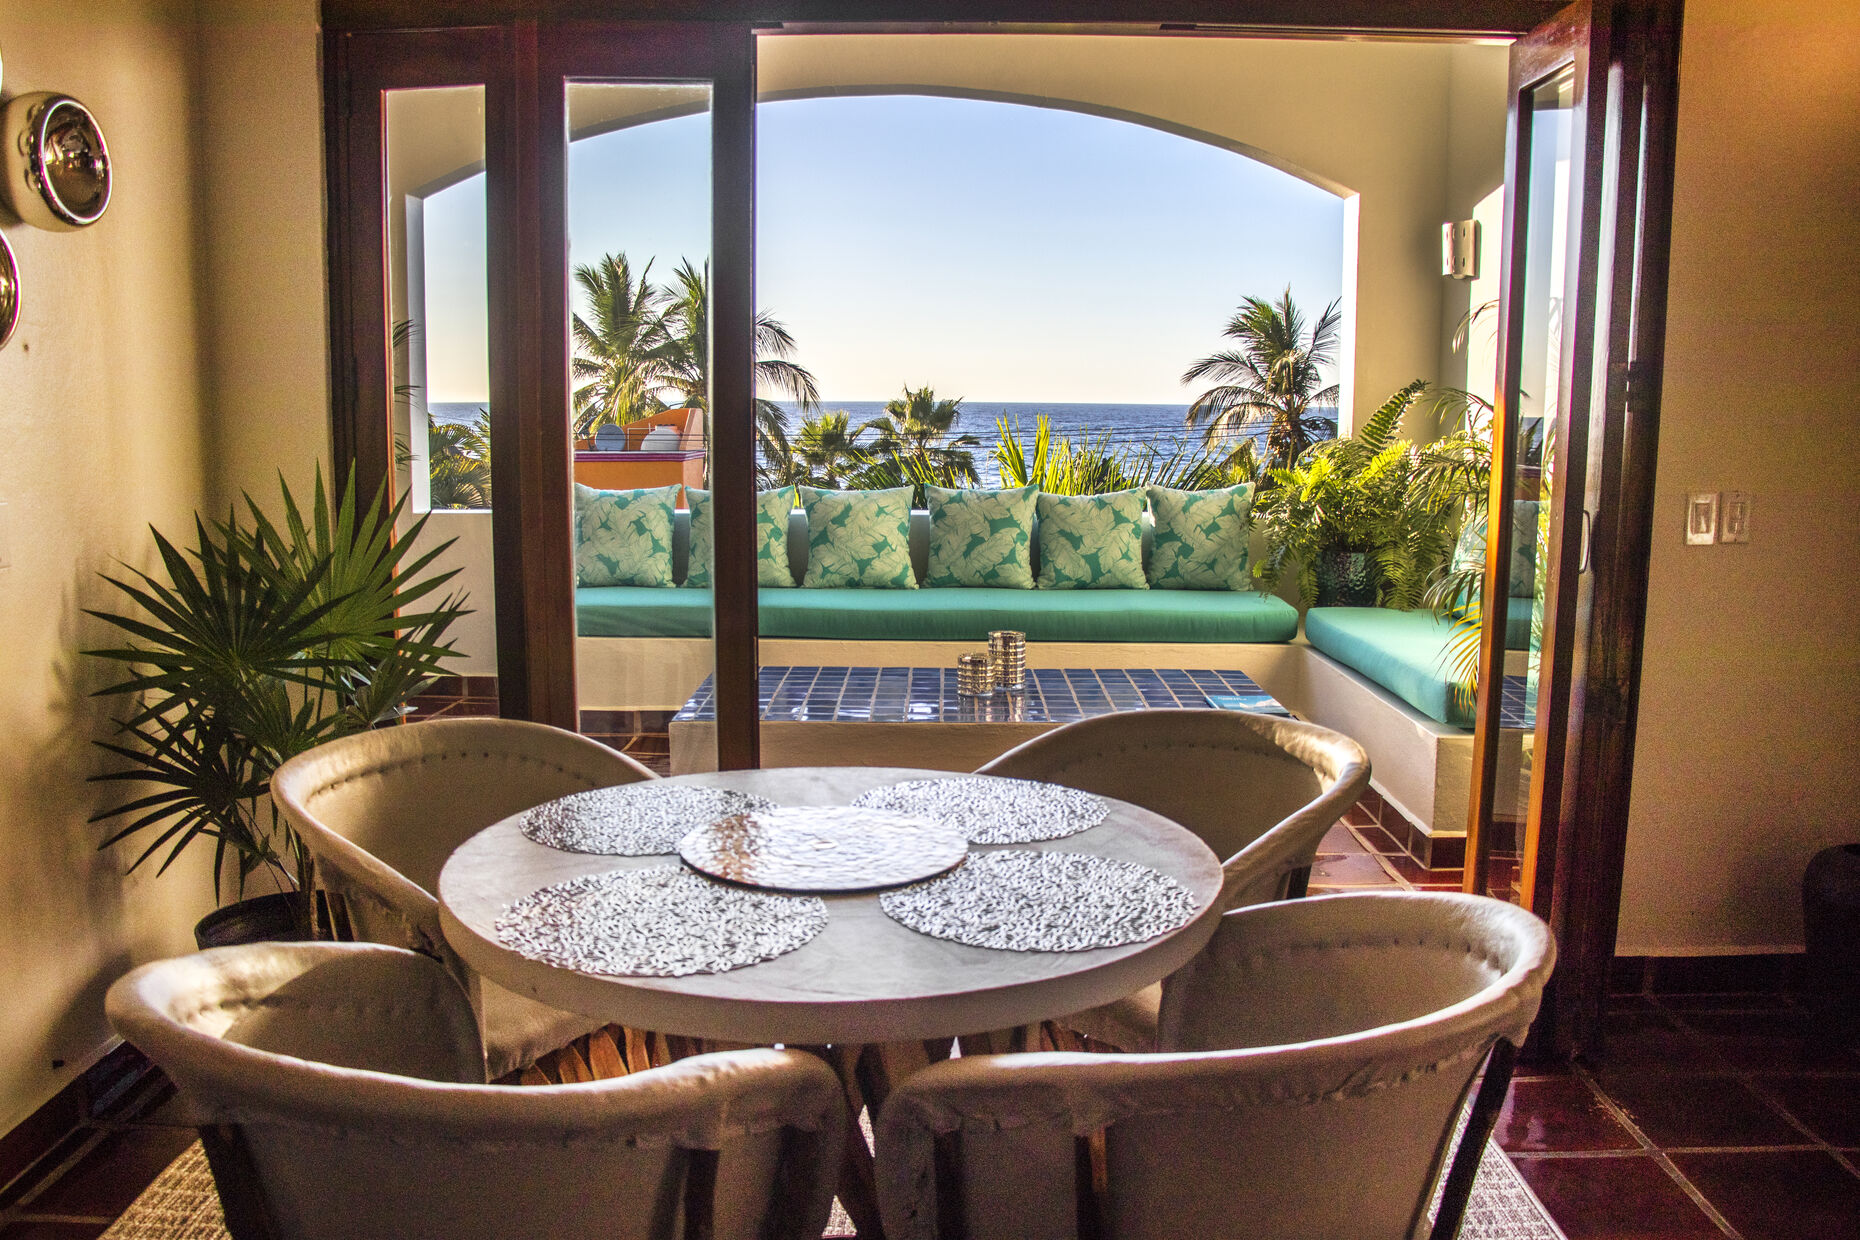 Your private dining room and Amazing Outdoor seating area with inviting ocean views